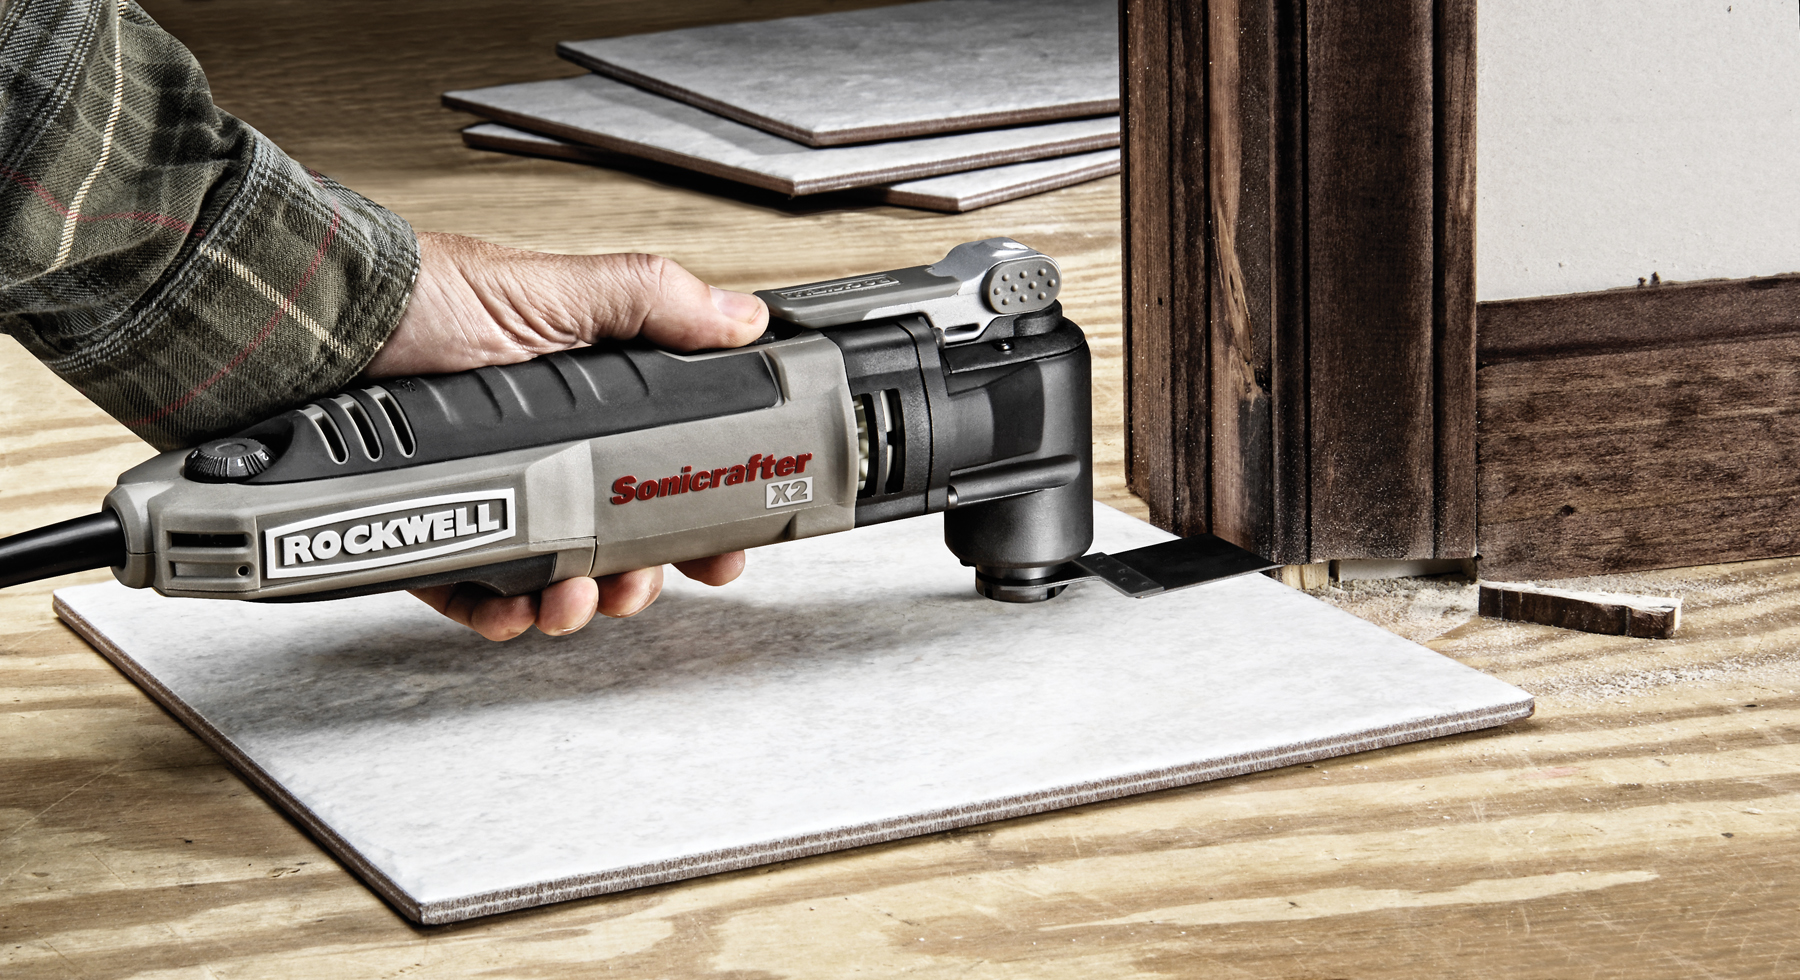 Rockwell oscillating tools